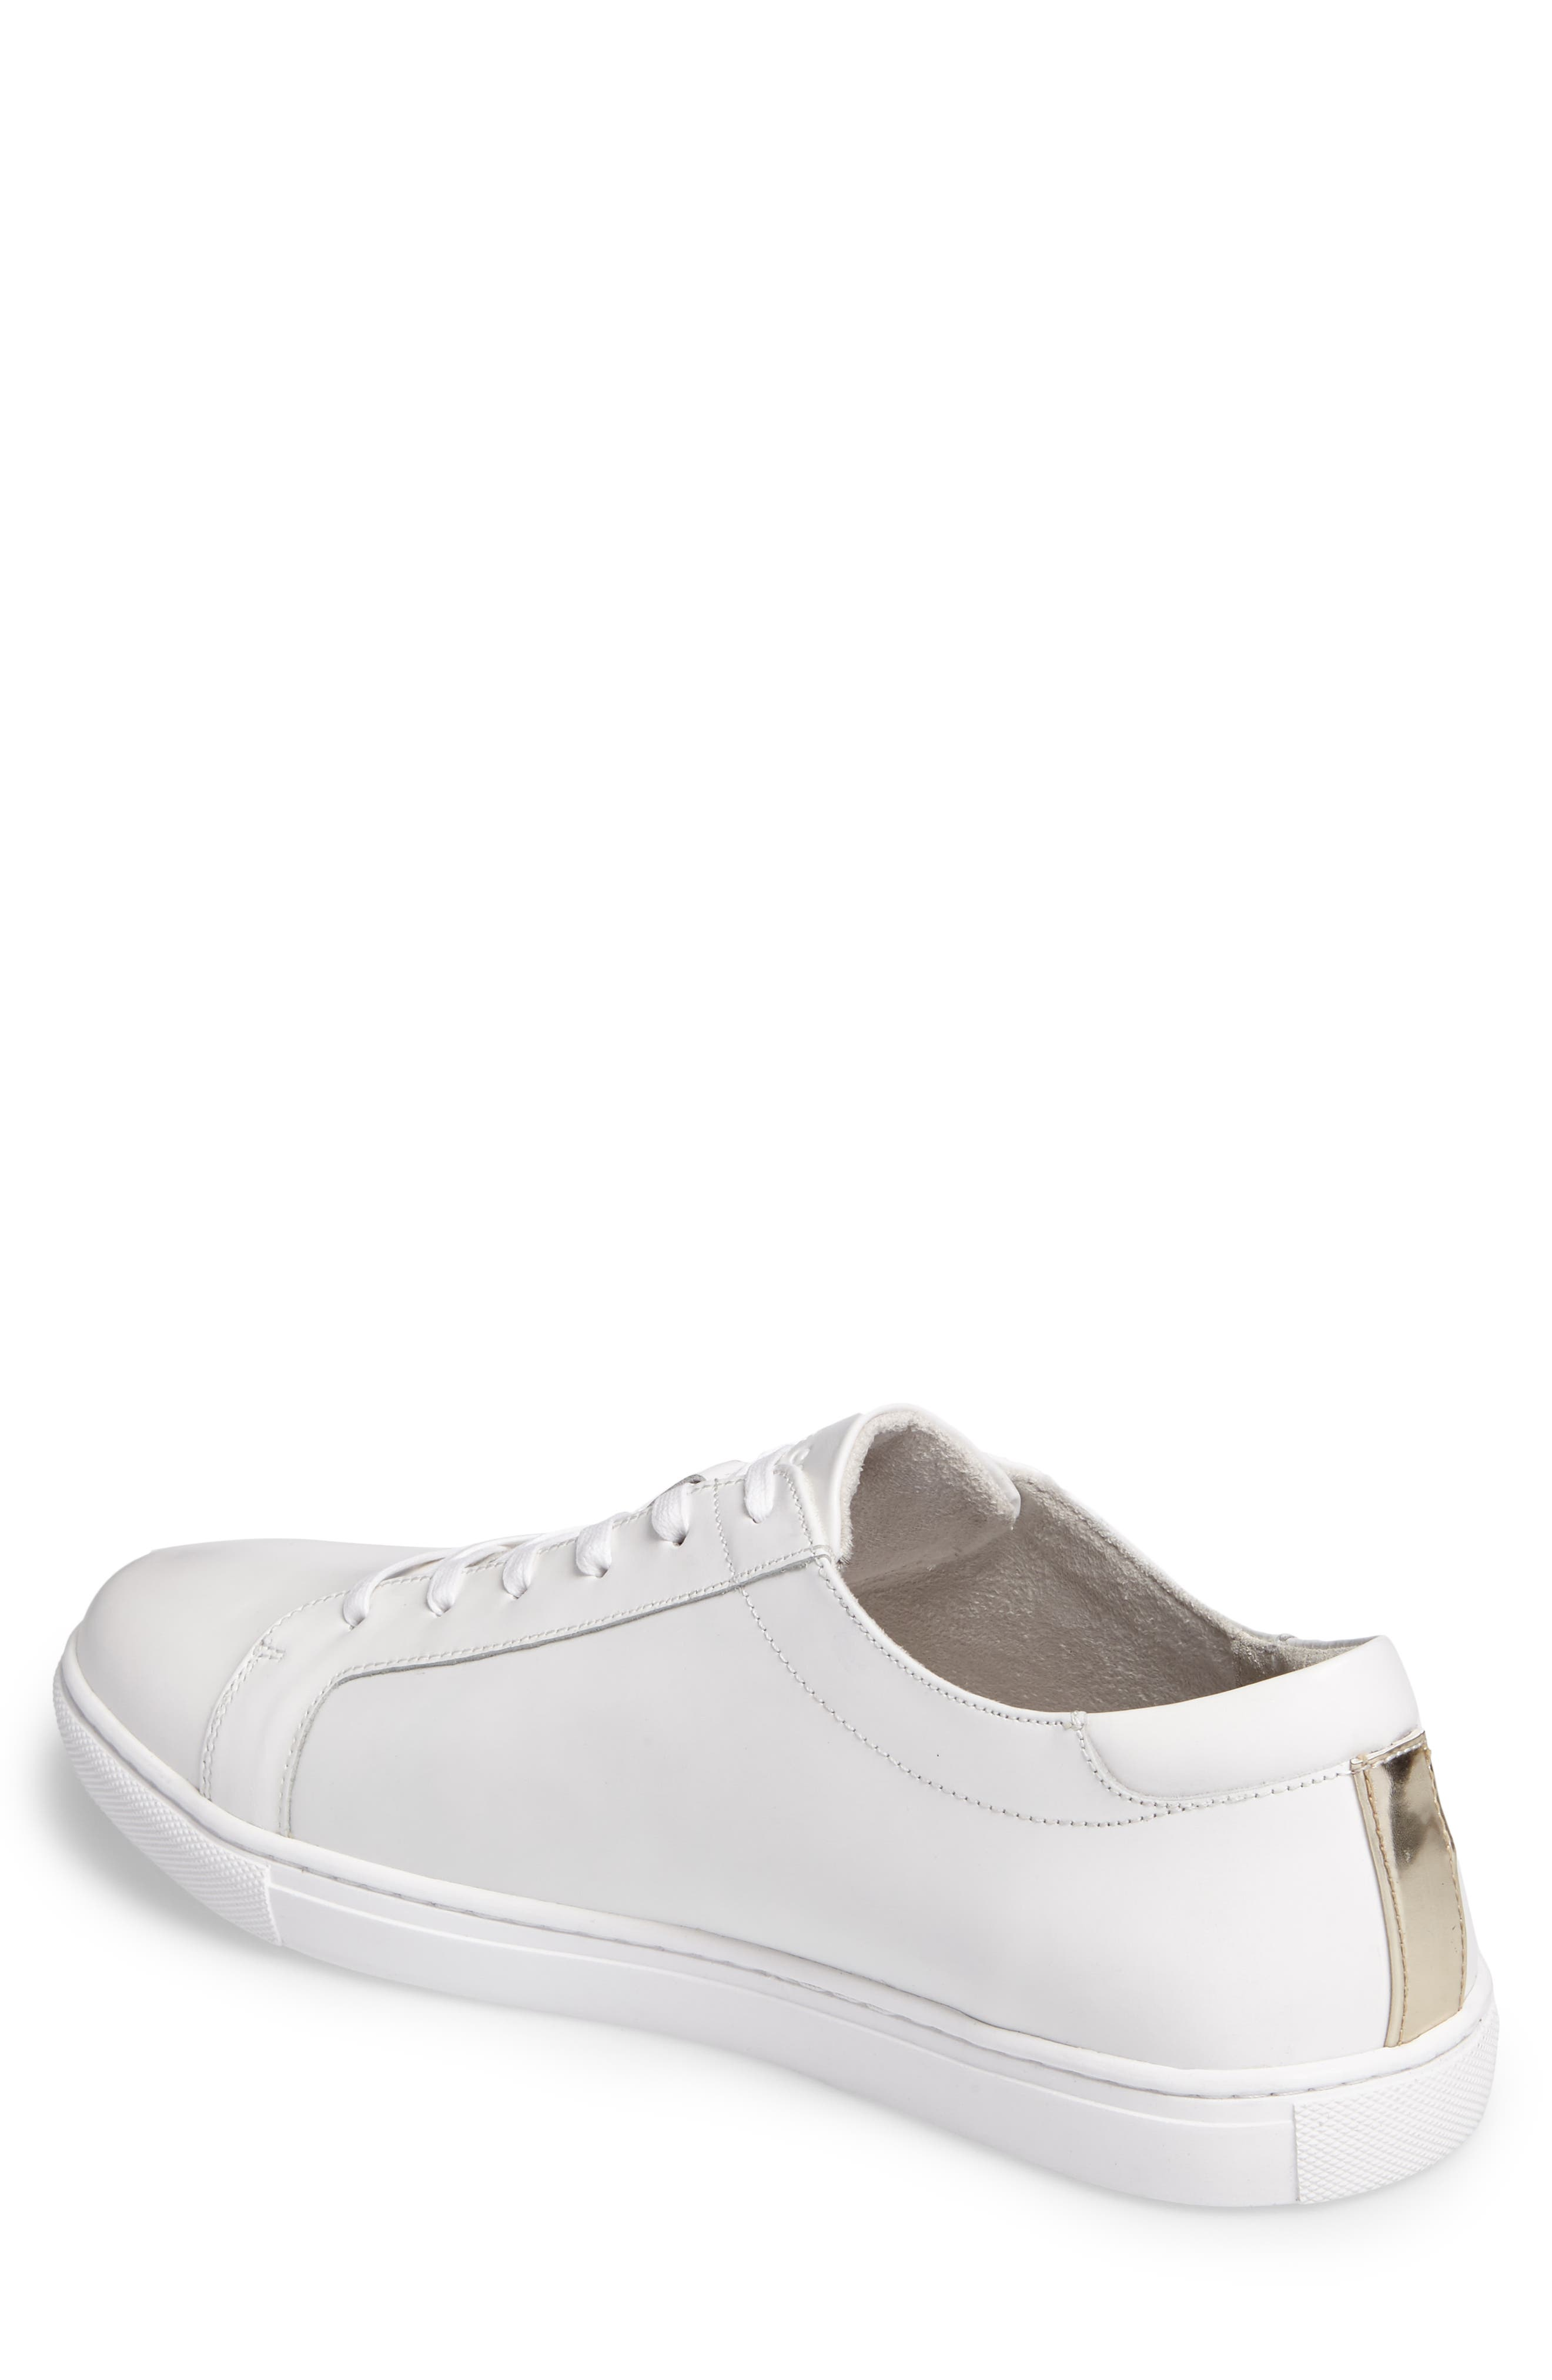 Alternate Image 2  - Kenneth Cole New York Kam Sneaker (Men)